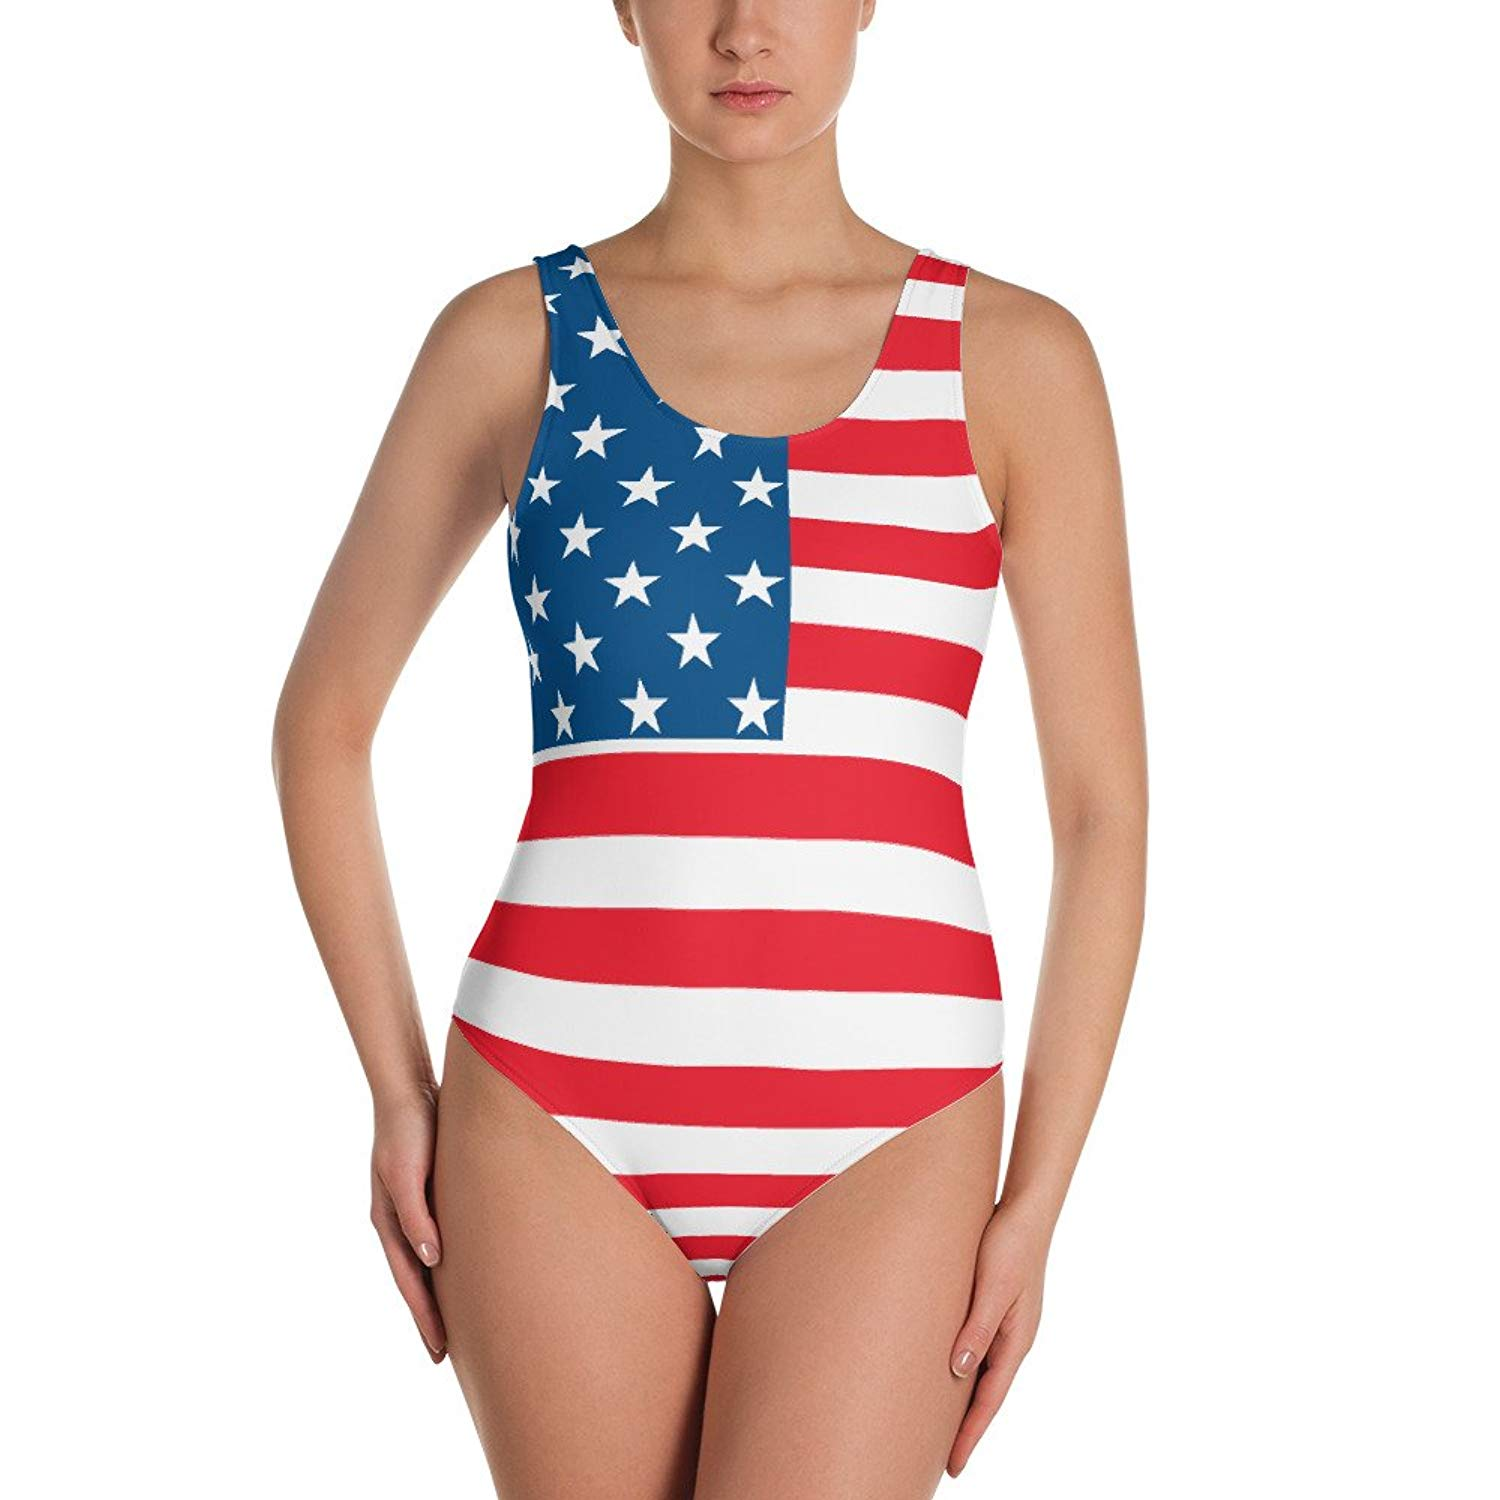 2c126f7c96aba Get Quotations · True Hue Apparel American Flag Print Women s One-Piece  Swimsuit July 4th